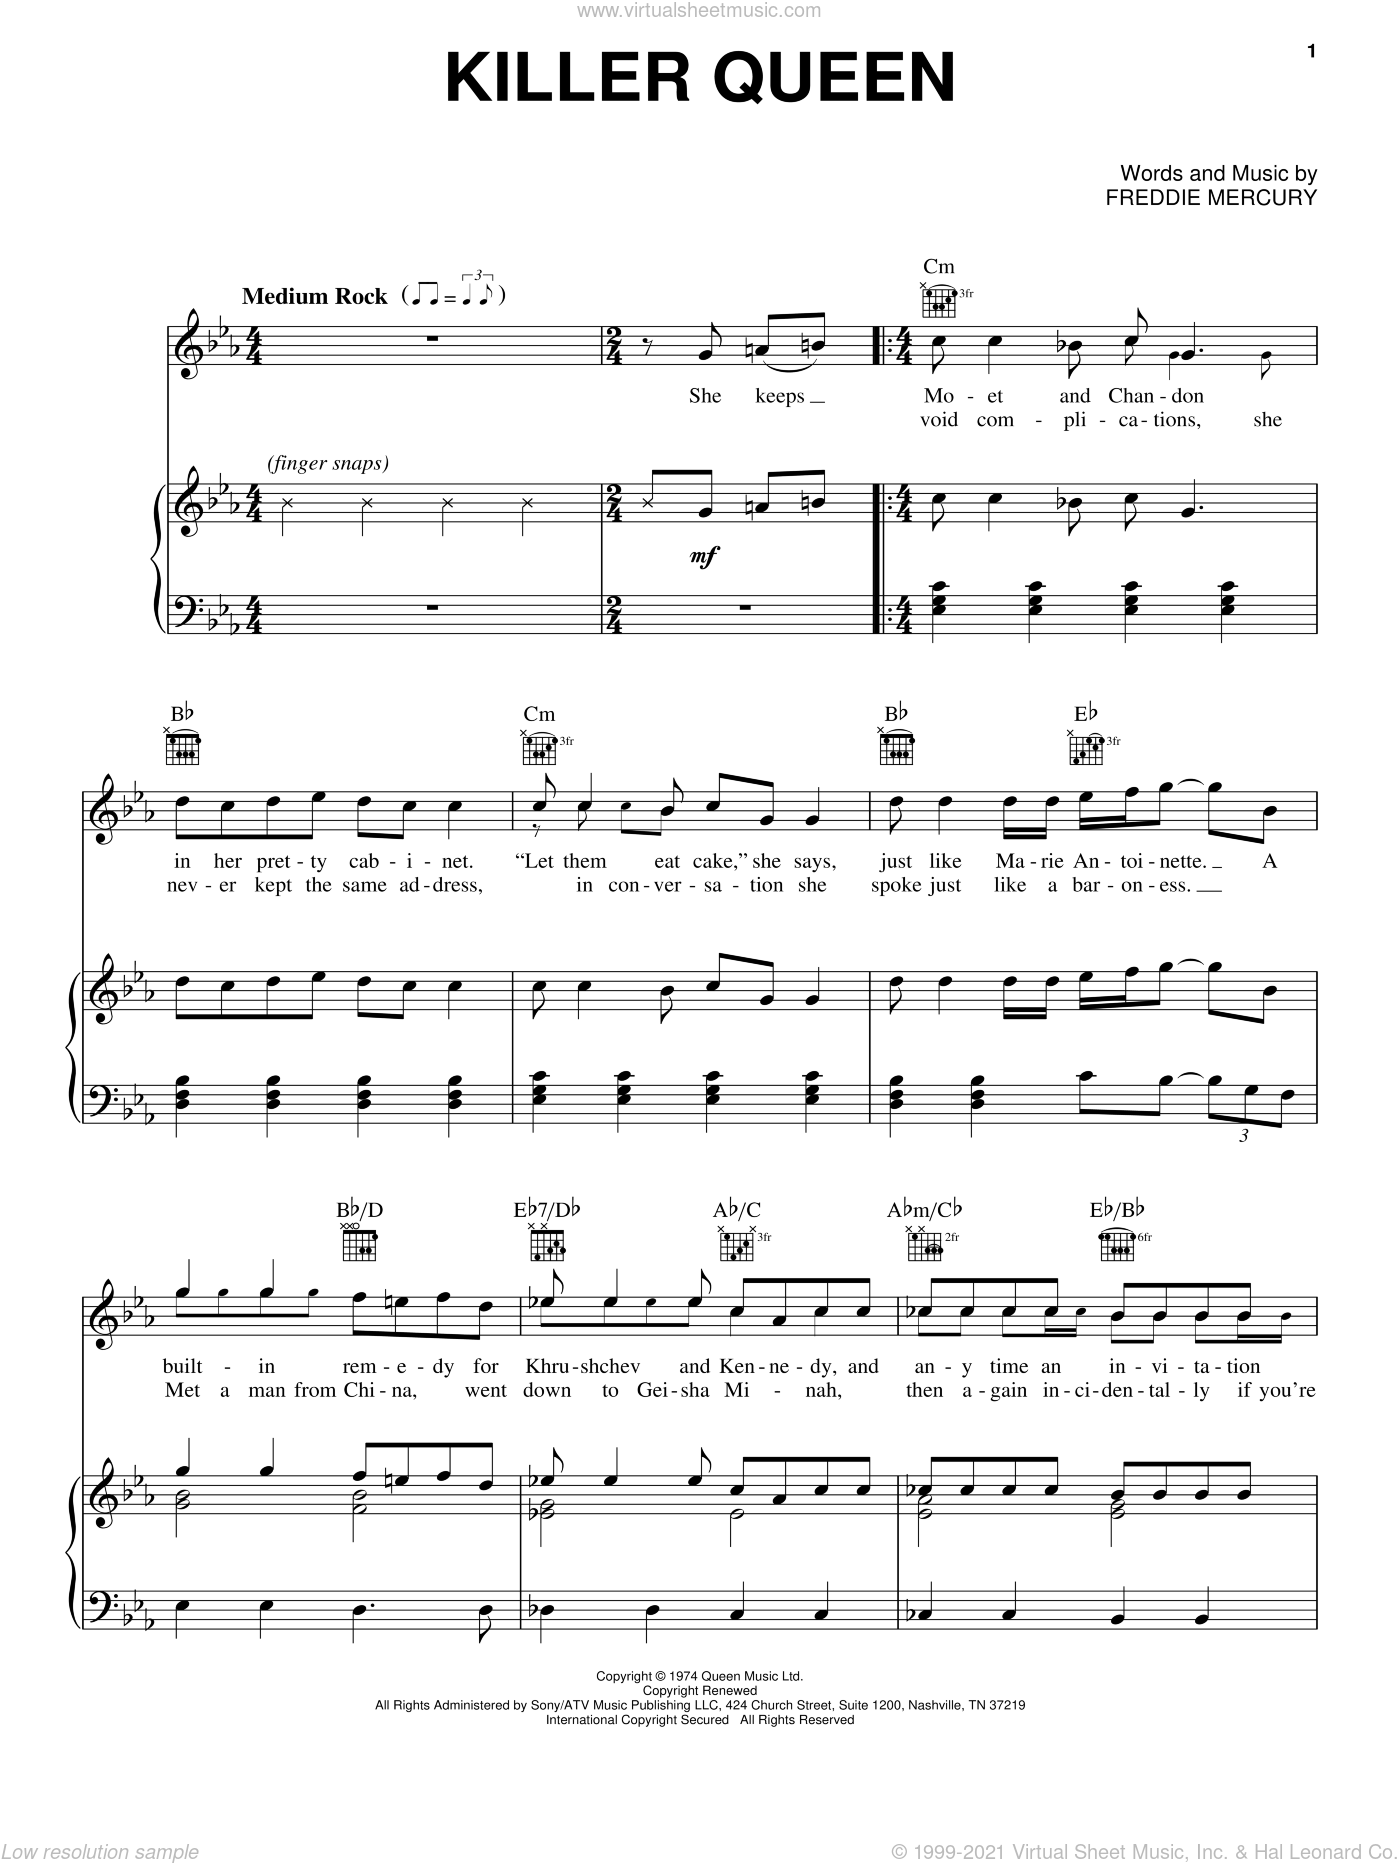 Killer Queen sheet music for voice, piano or guitar by Freddie Mercury and Queen. Score Image Preview.